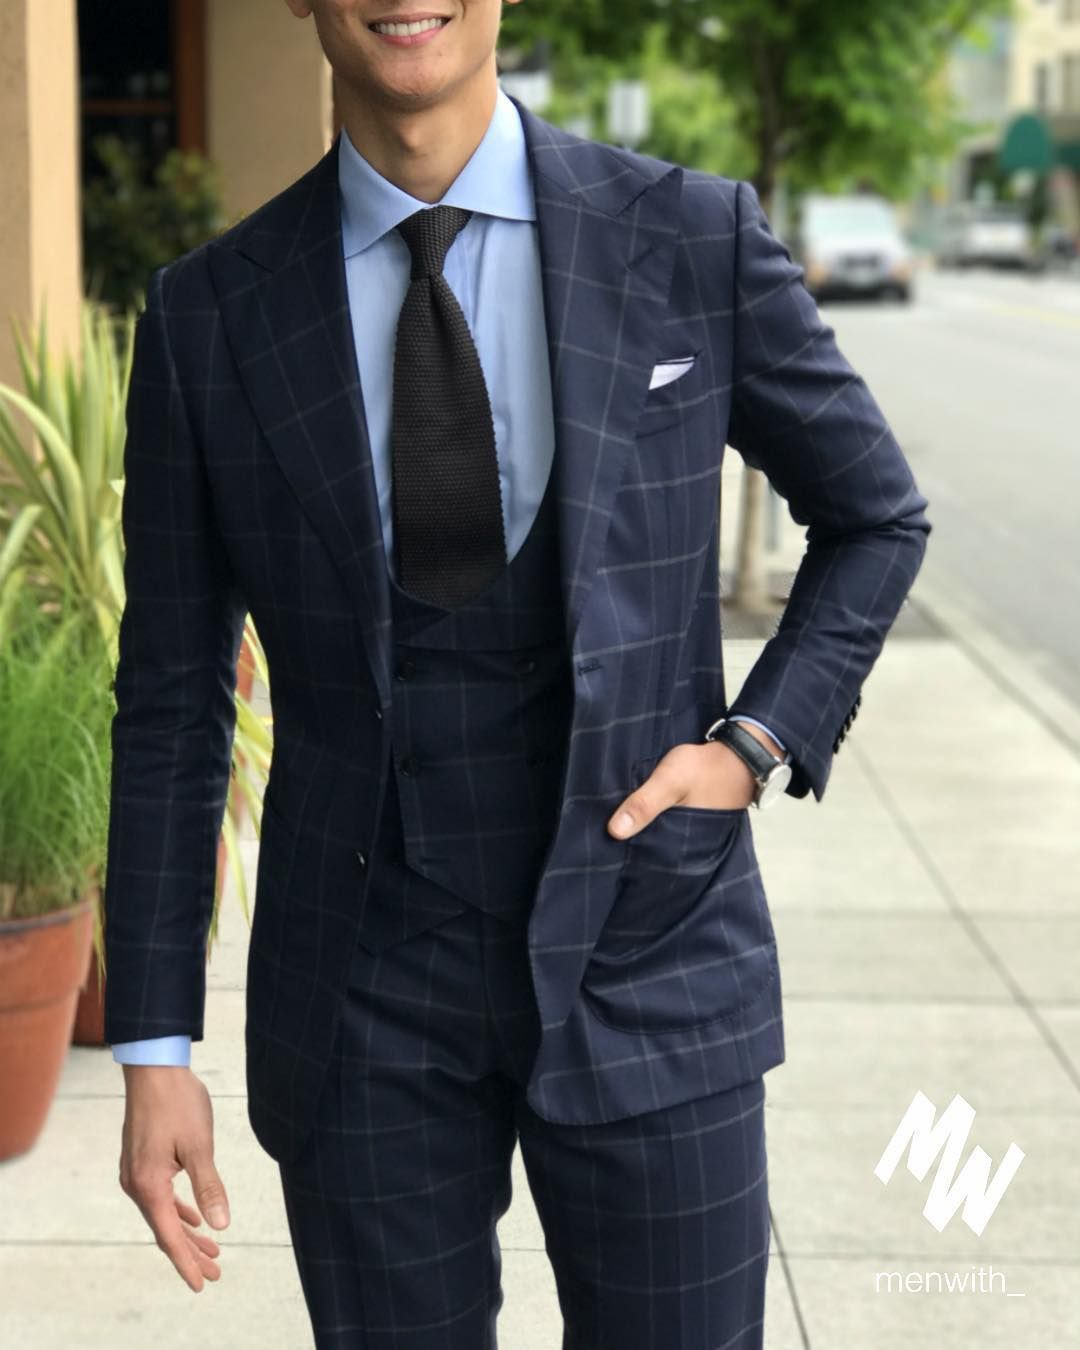 Men with class  menswear cc  menwithclass   Mens Suits   The Best ... fe491b31a5